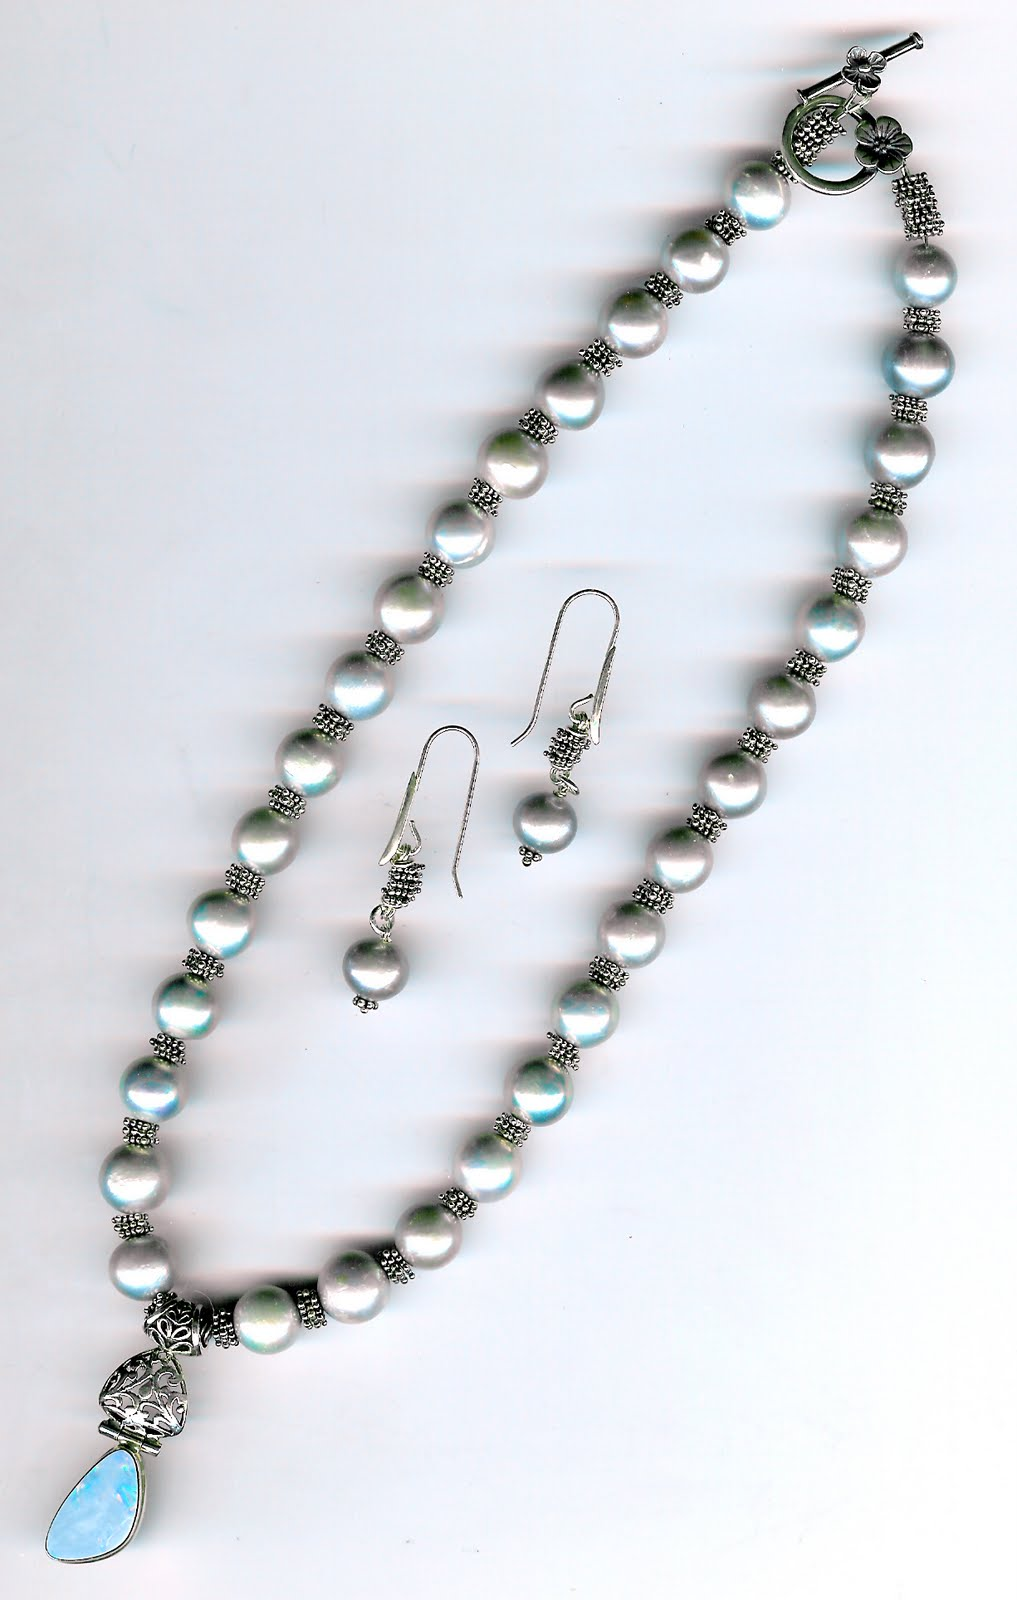 231. Akoya Pearls, Bali Sterling Silver with Opal Pendant set in Sterling Silver